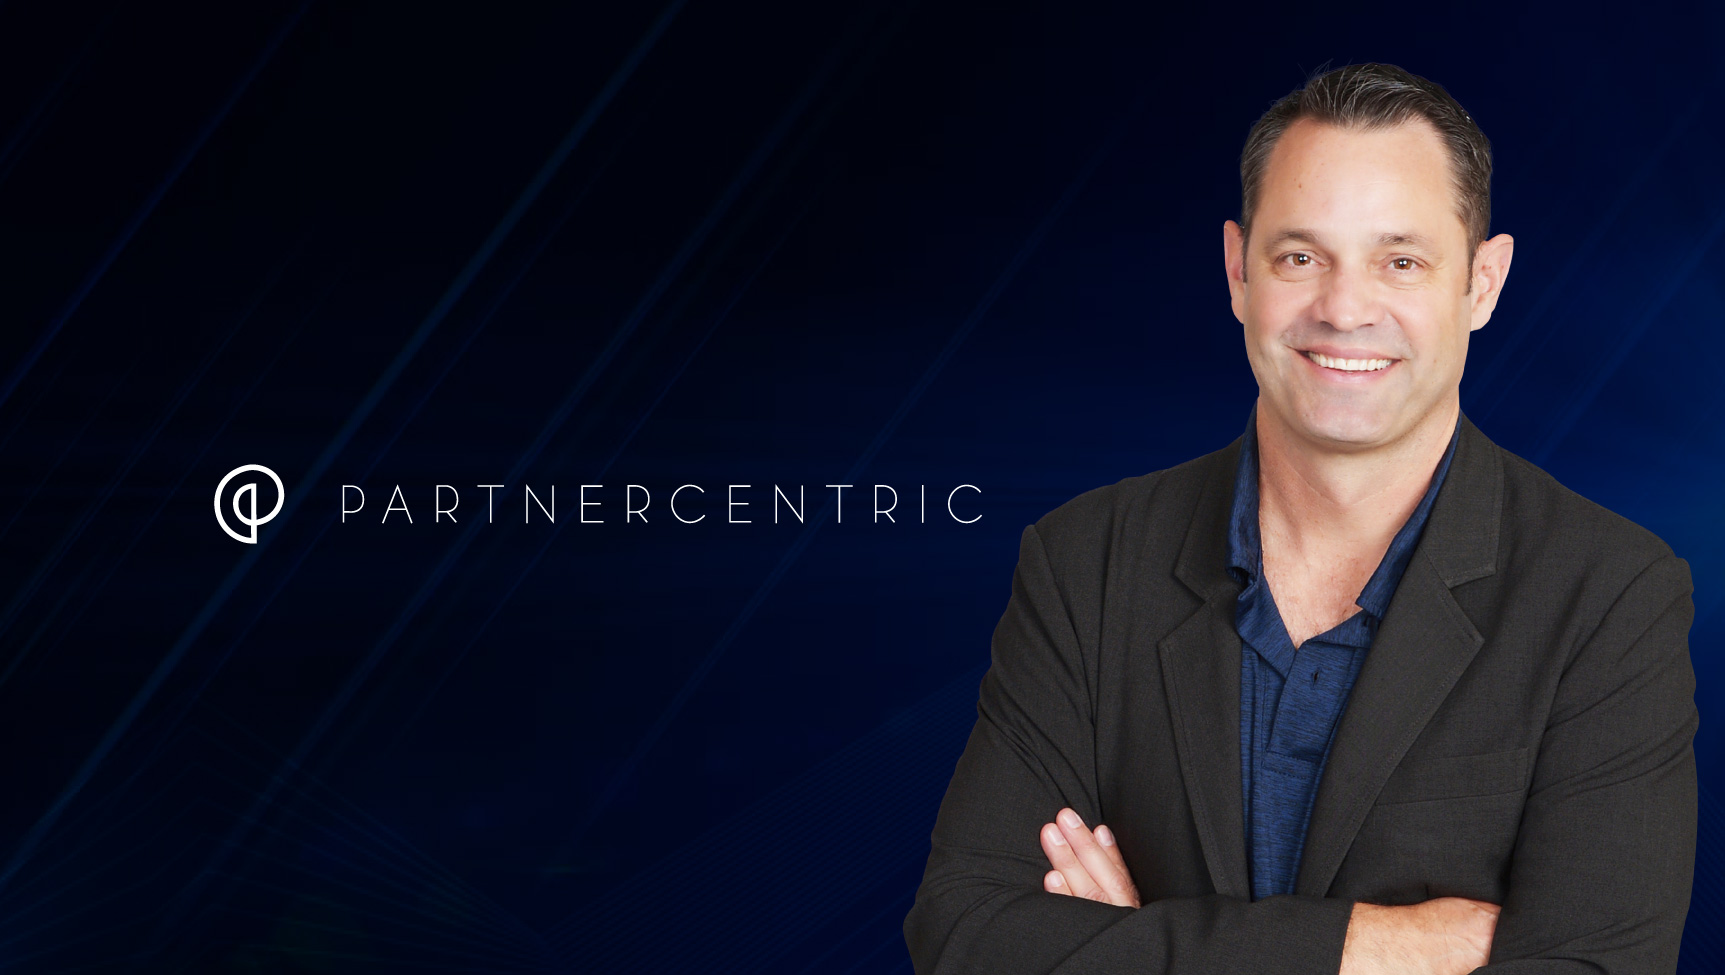 SalesTech Interview with Craig McGlynn, VP of Revenue at PartnerCentric